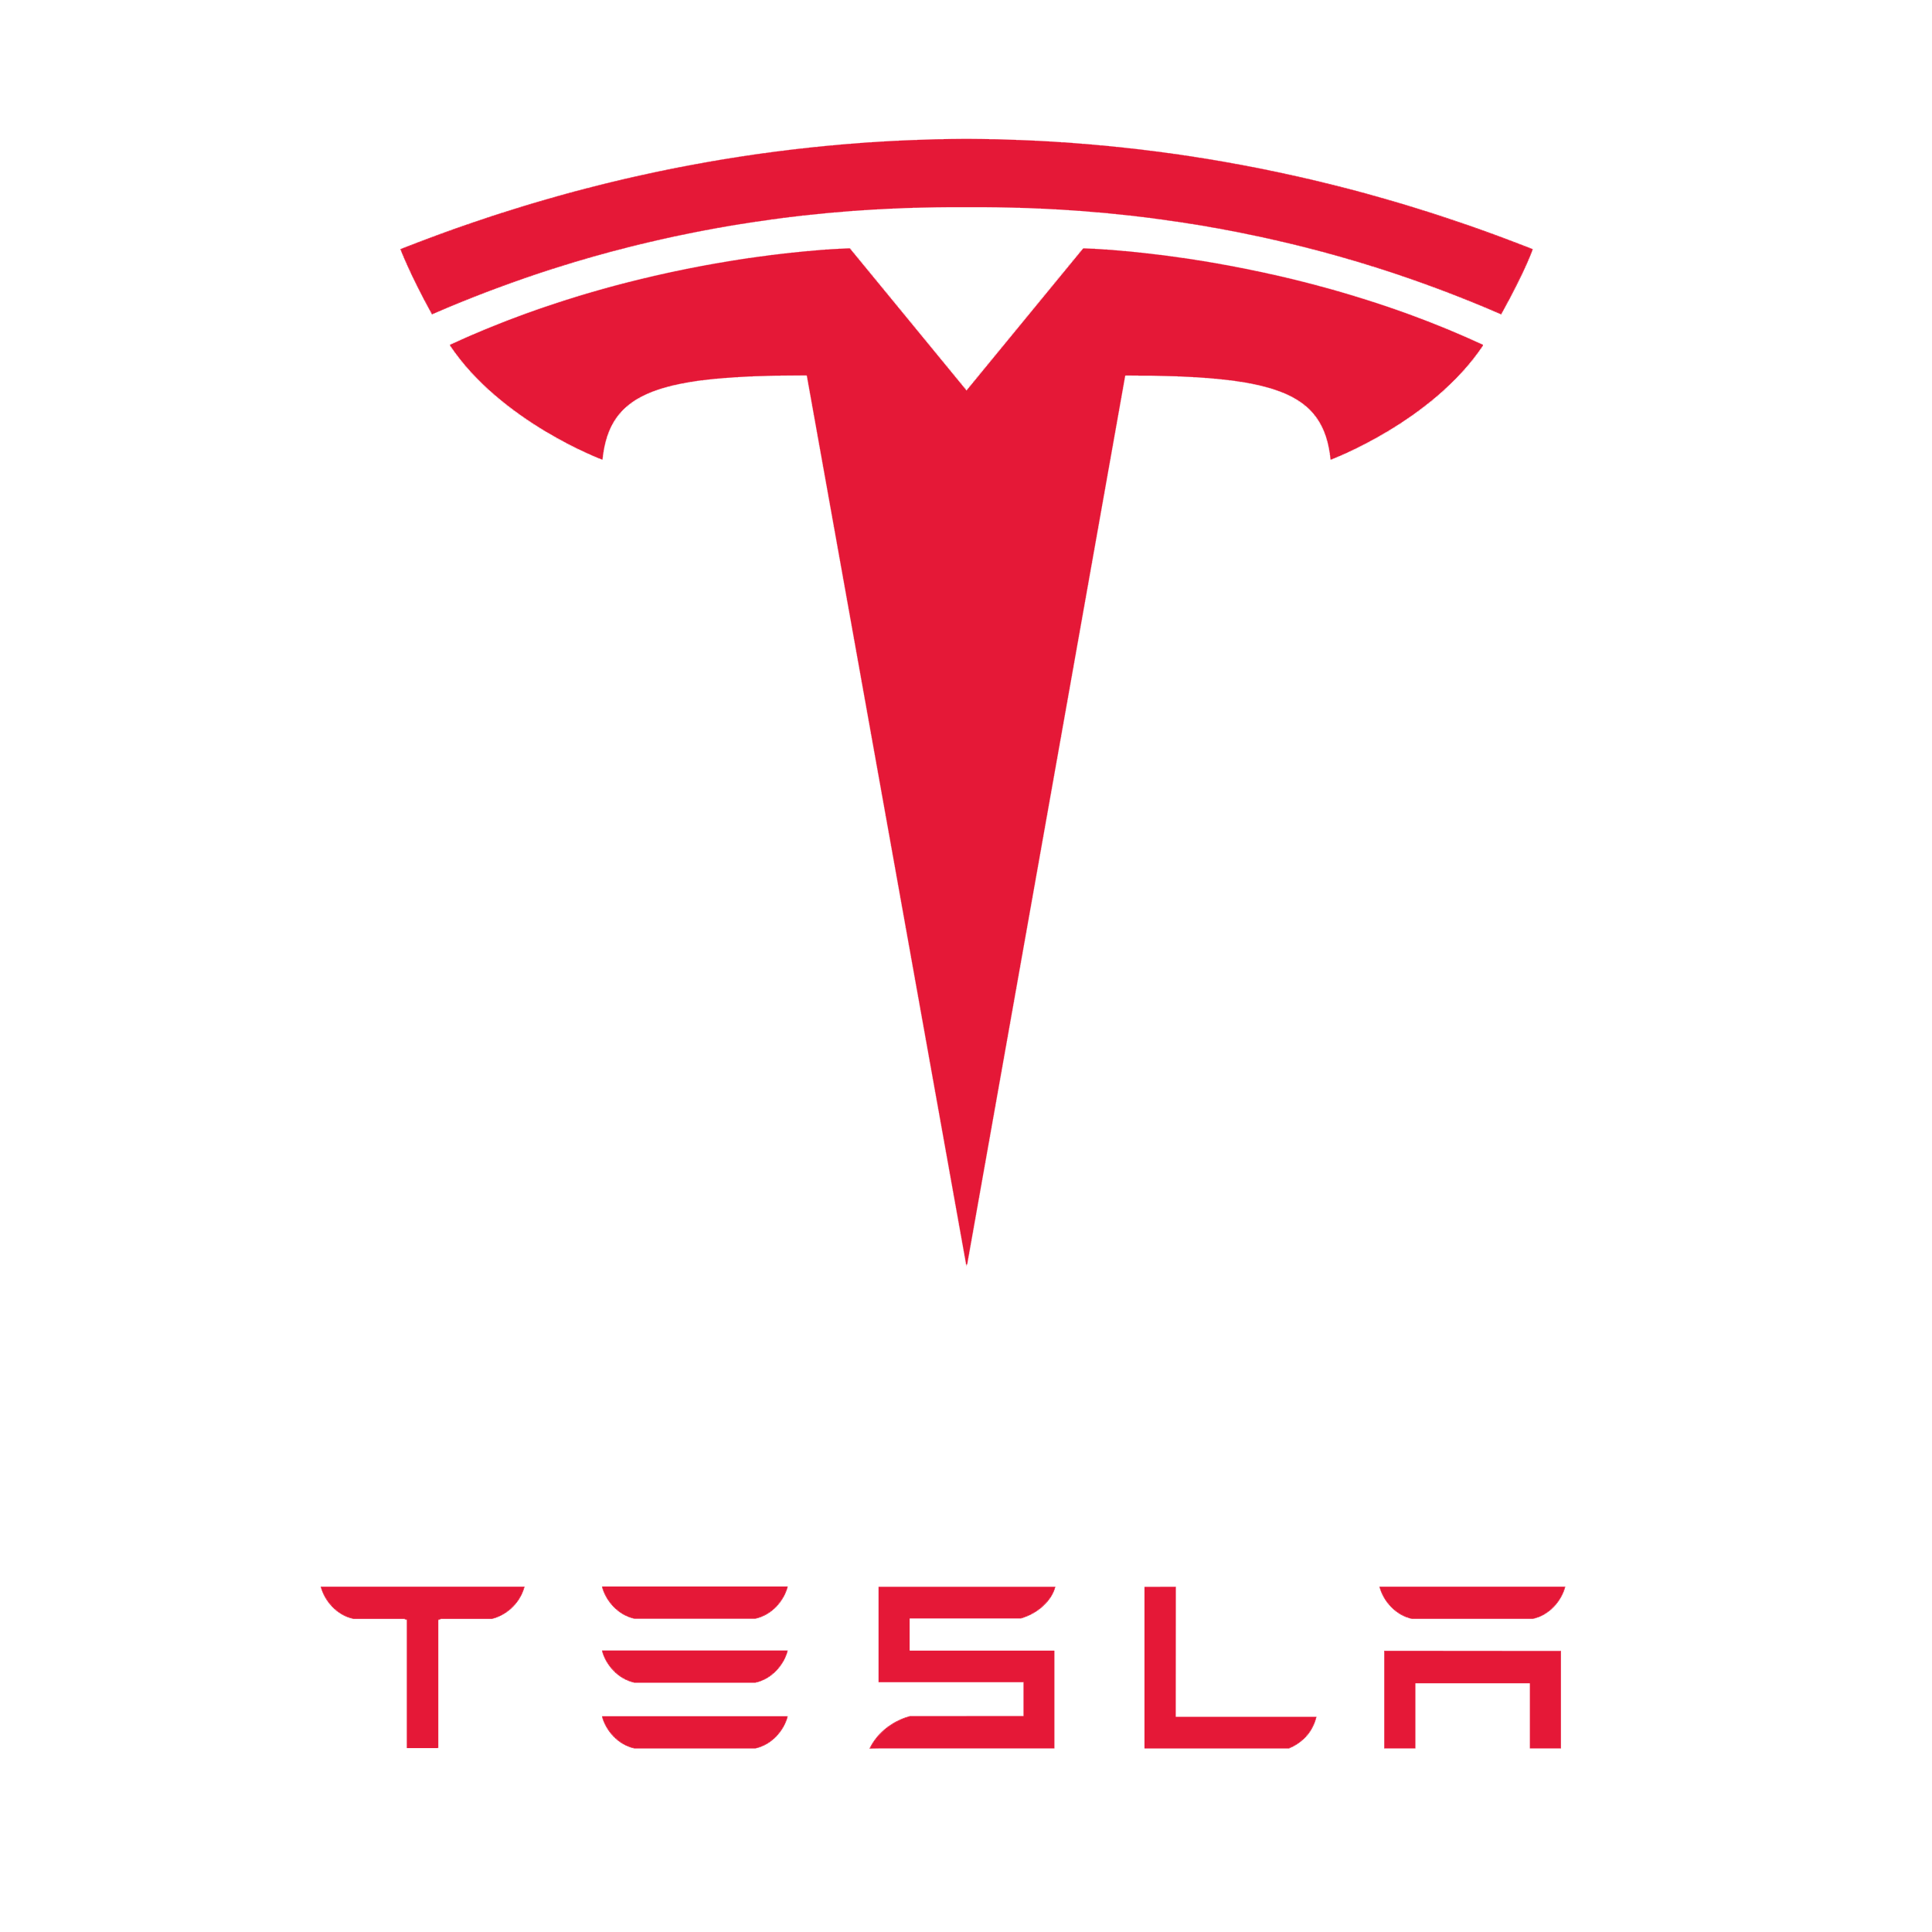 Tesla Incentives February 2021